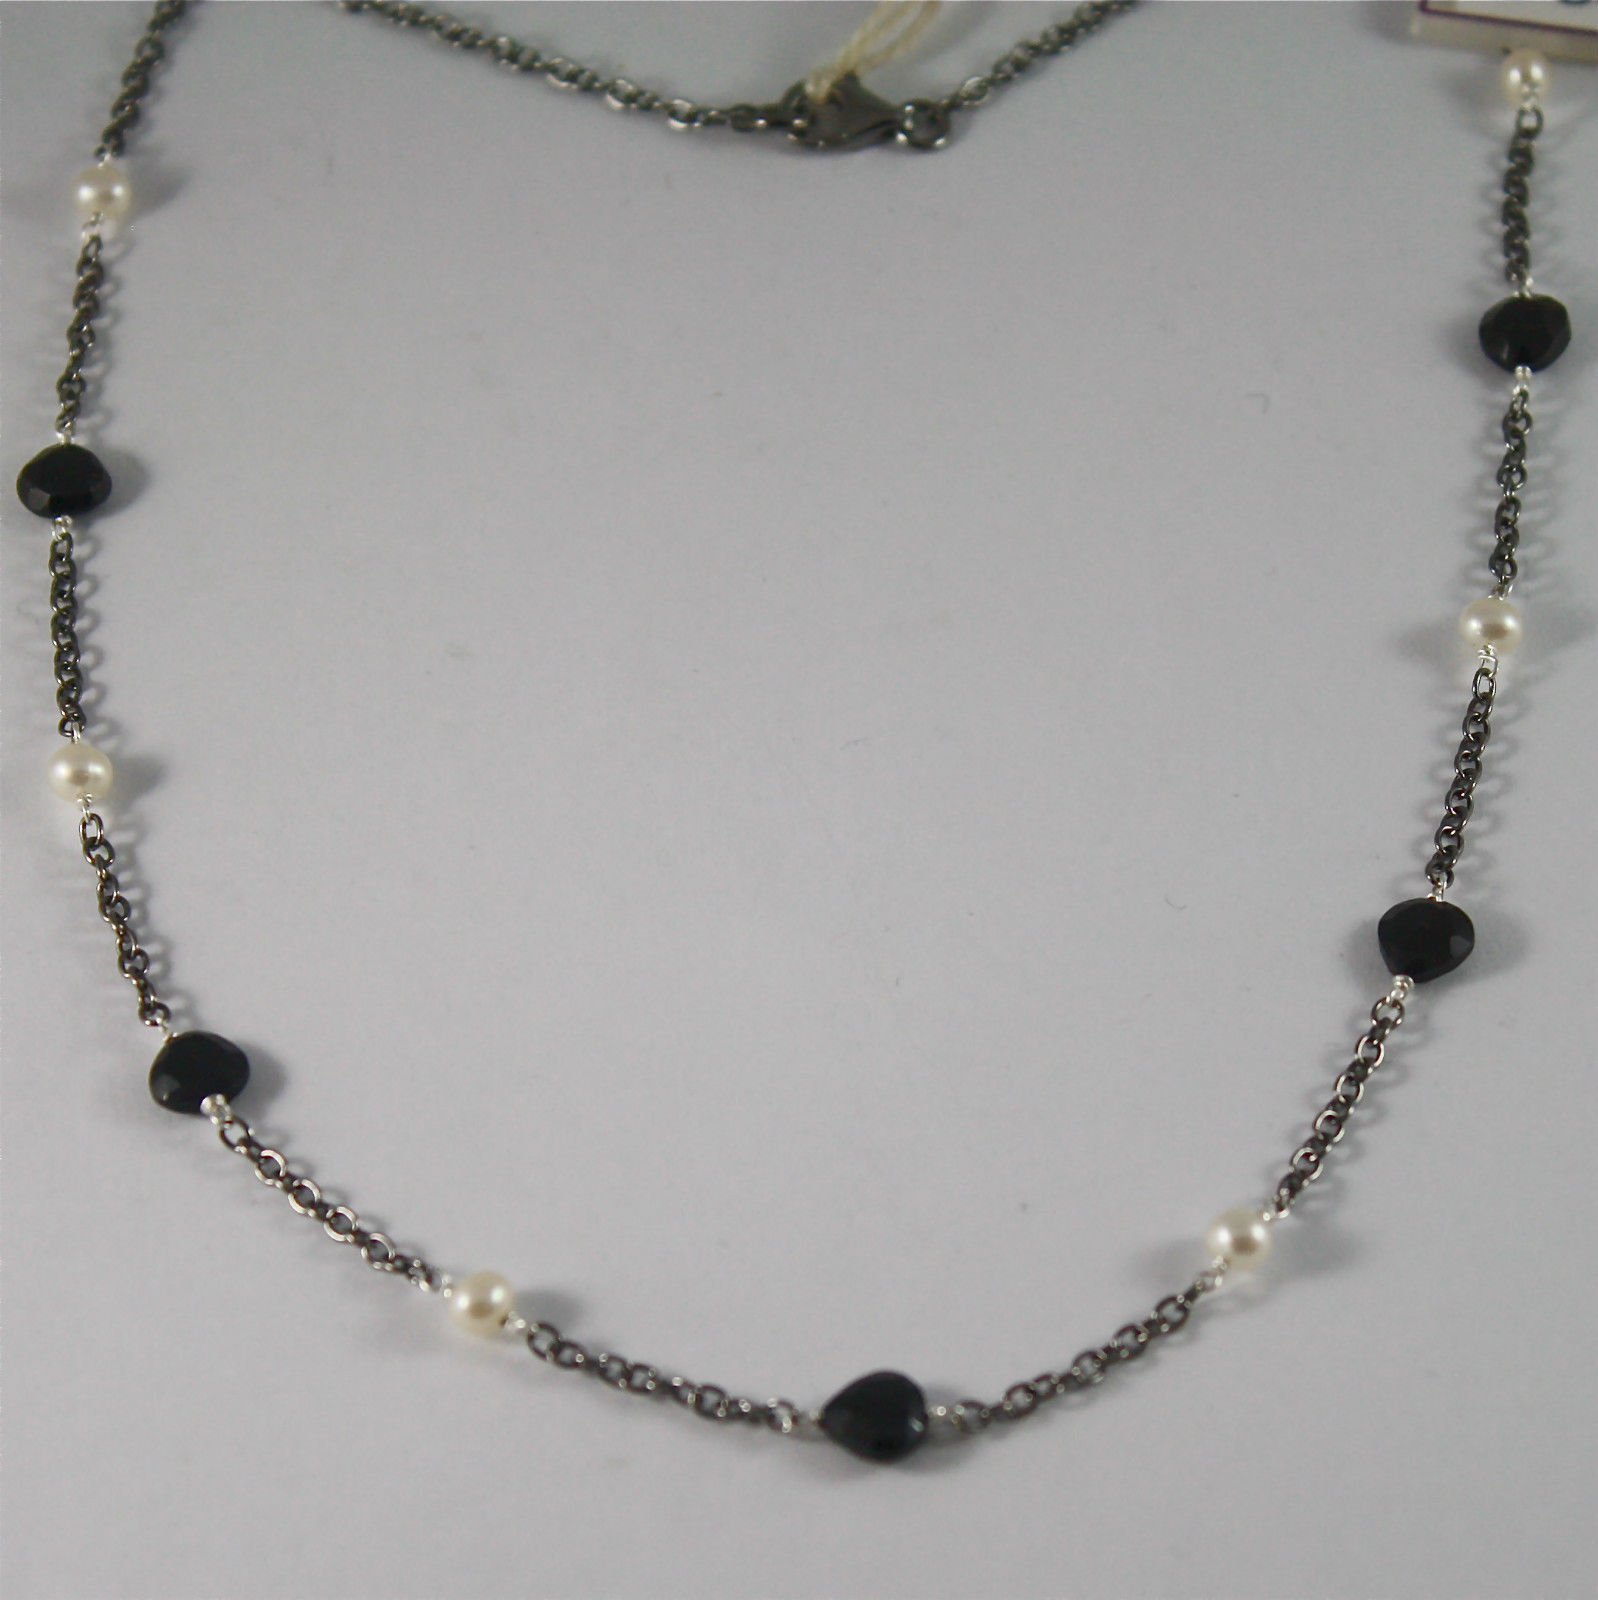 .925 BURNISHED SILVER NECKLACE WITH WHITE FW PEARLS AND BLACK SPINEL 17.72 INCH